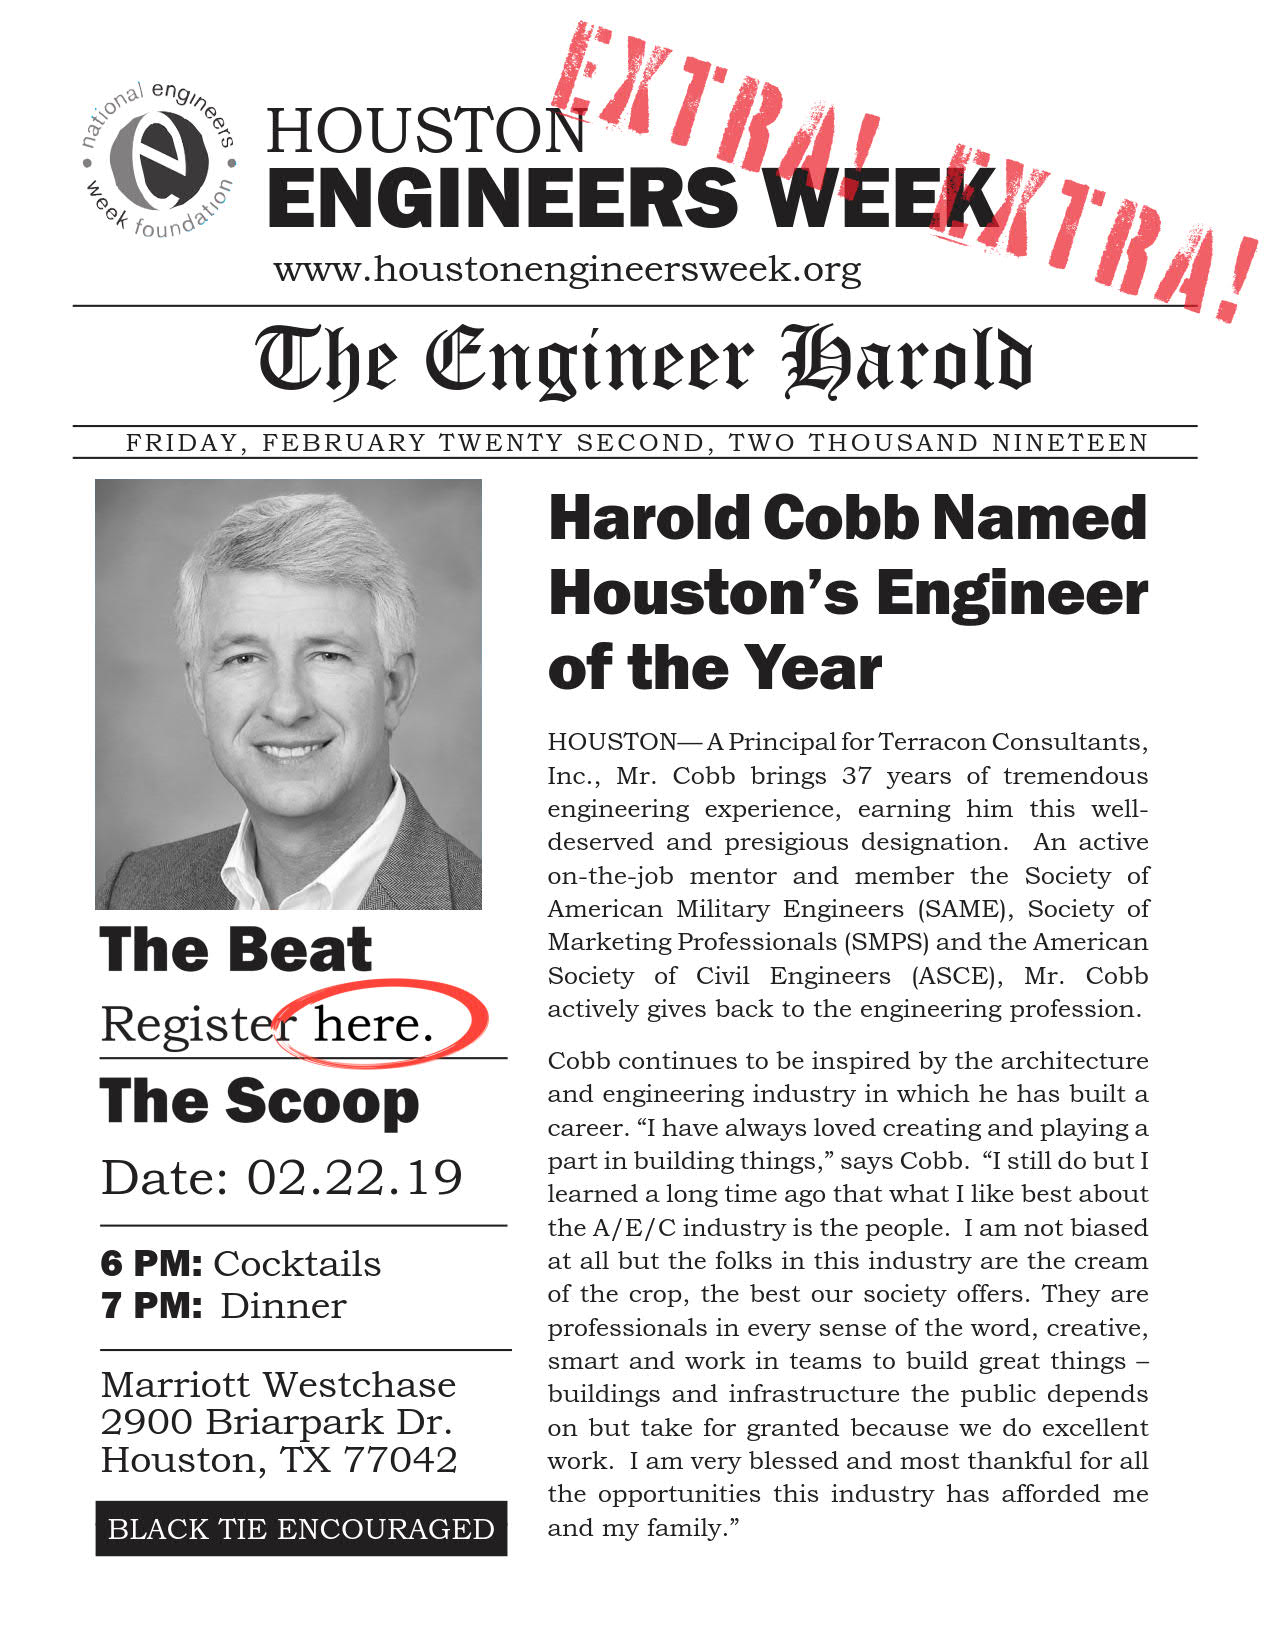 "Houston Gala Calendar For February 2019 2019 Engineer of the Year Gala > Houston/Galveston Post"" title=""Houston Gala Calendar For February 2019 2019 Engineer of the Year Gala > Houston/Galveston Post"" width=""200″ height=""200″> <img src="